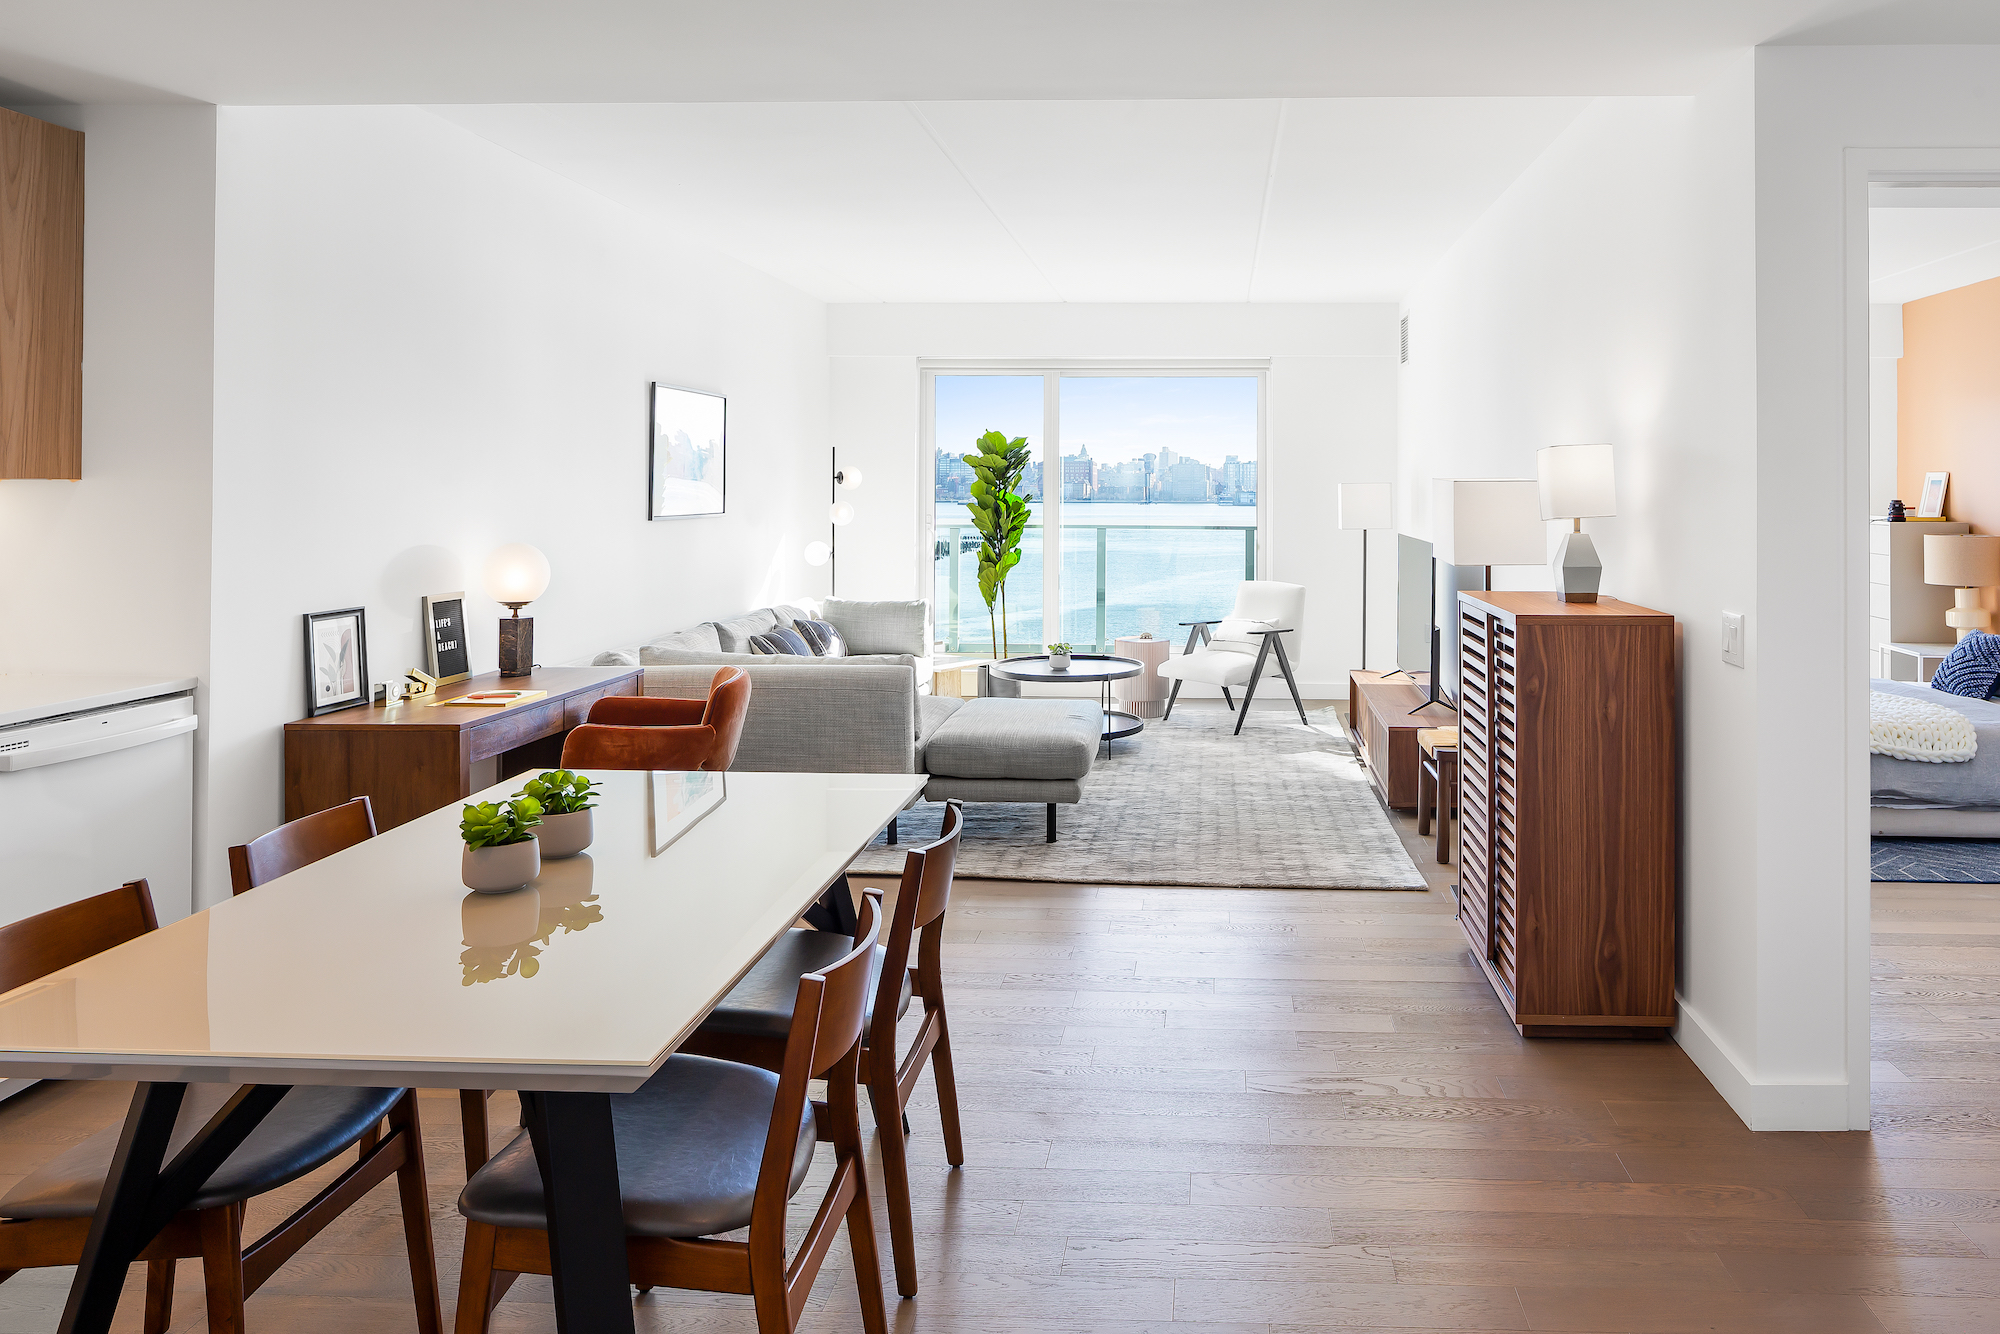 Luxury Jersey City rental The Beach has tons of outdoor space overlooking the skyline